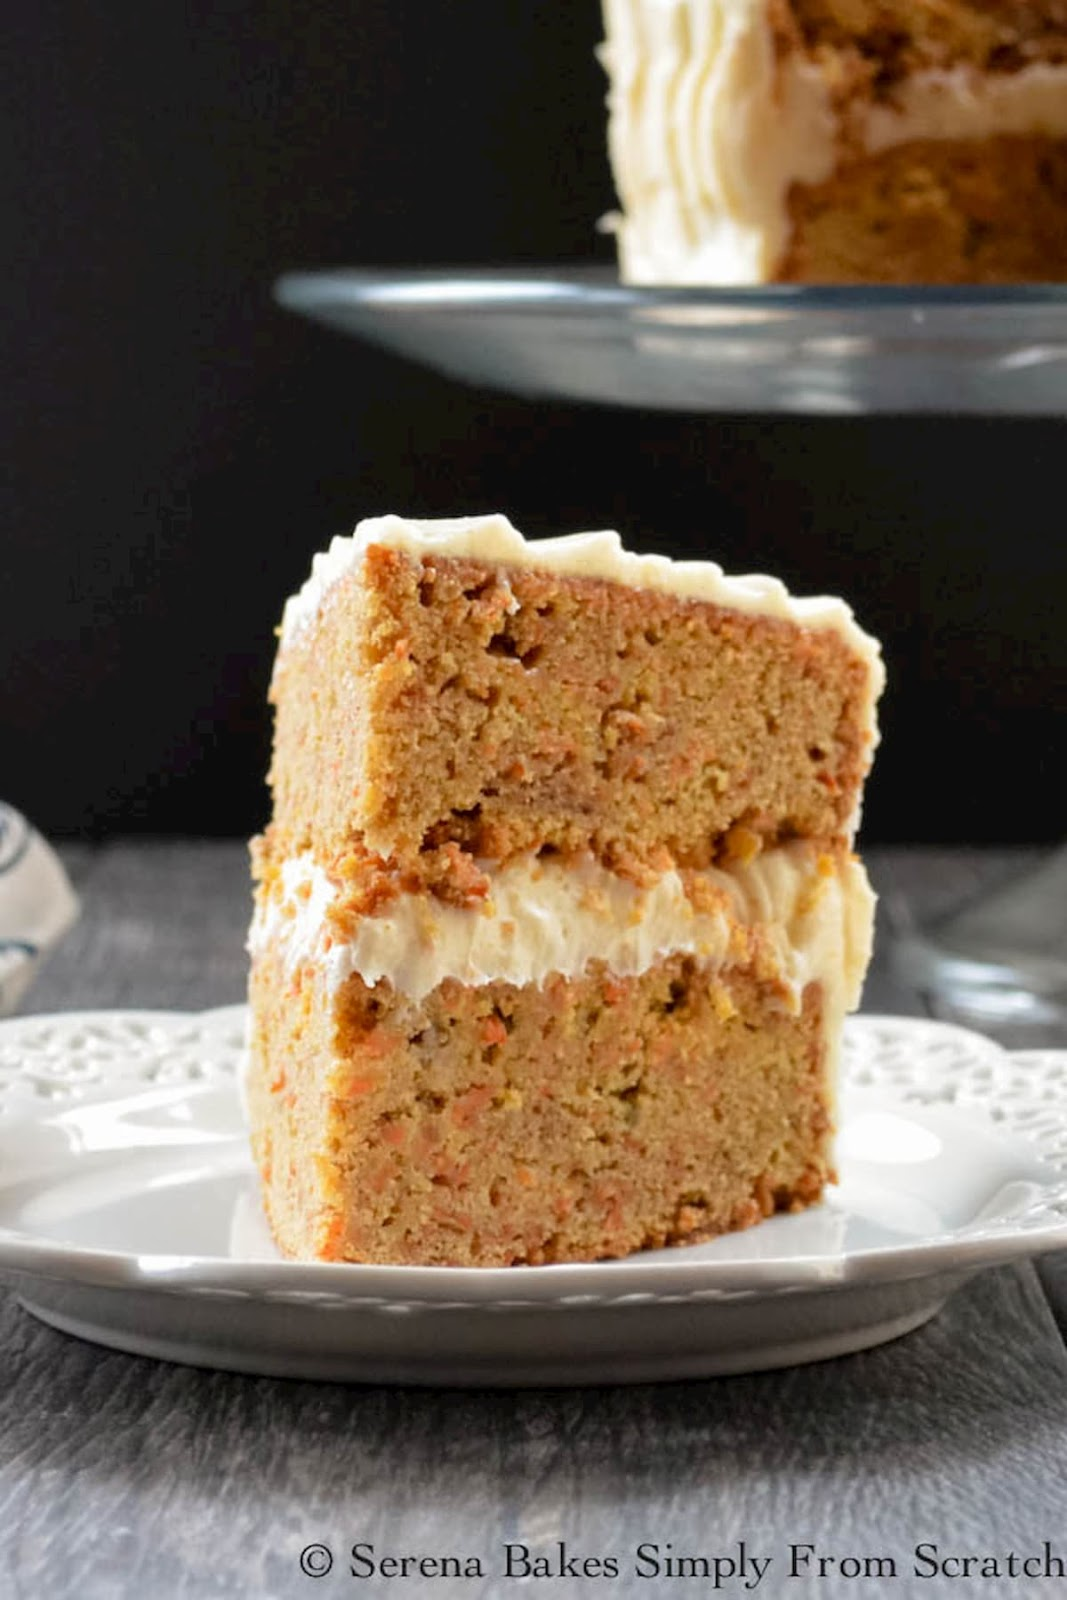 Carrot Cake with Pineapple and Cream Cheese Frosting